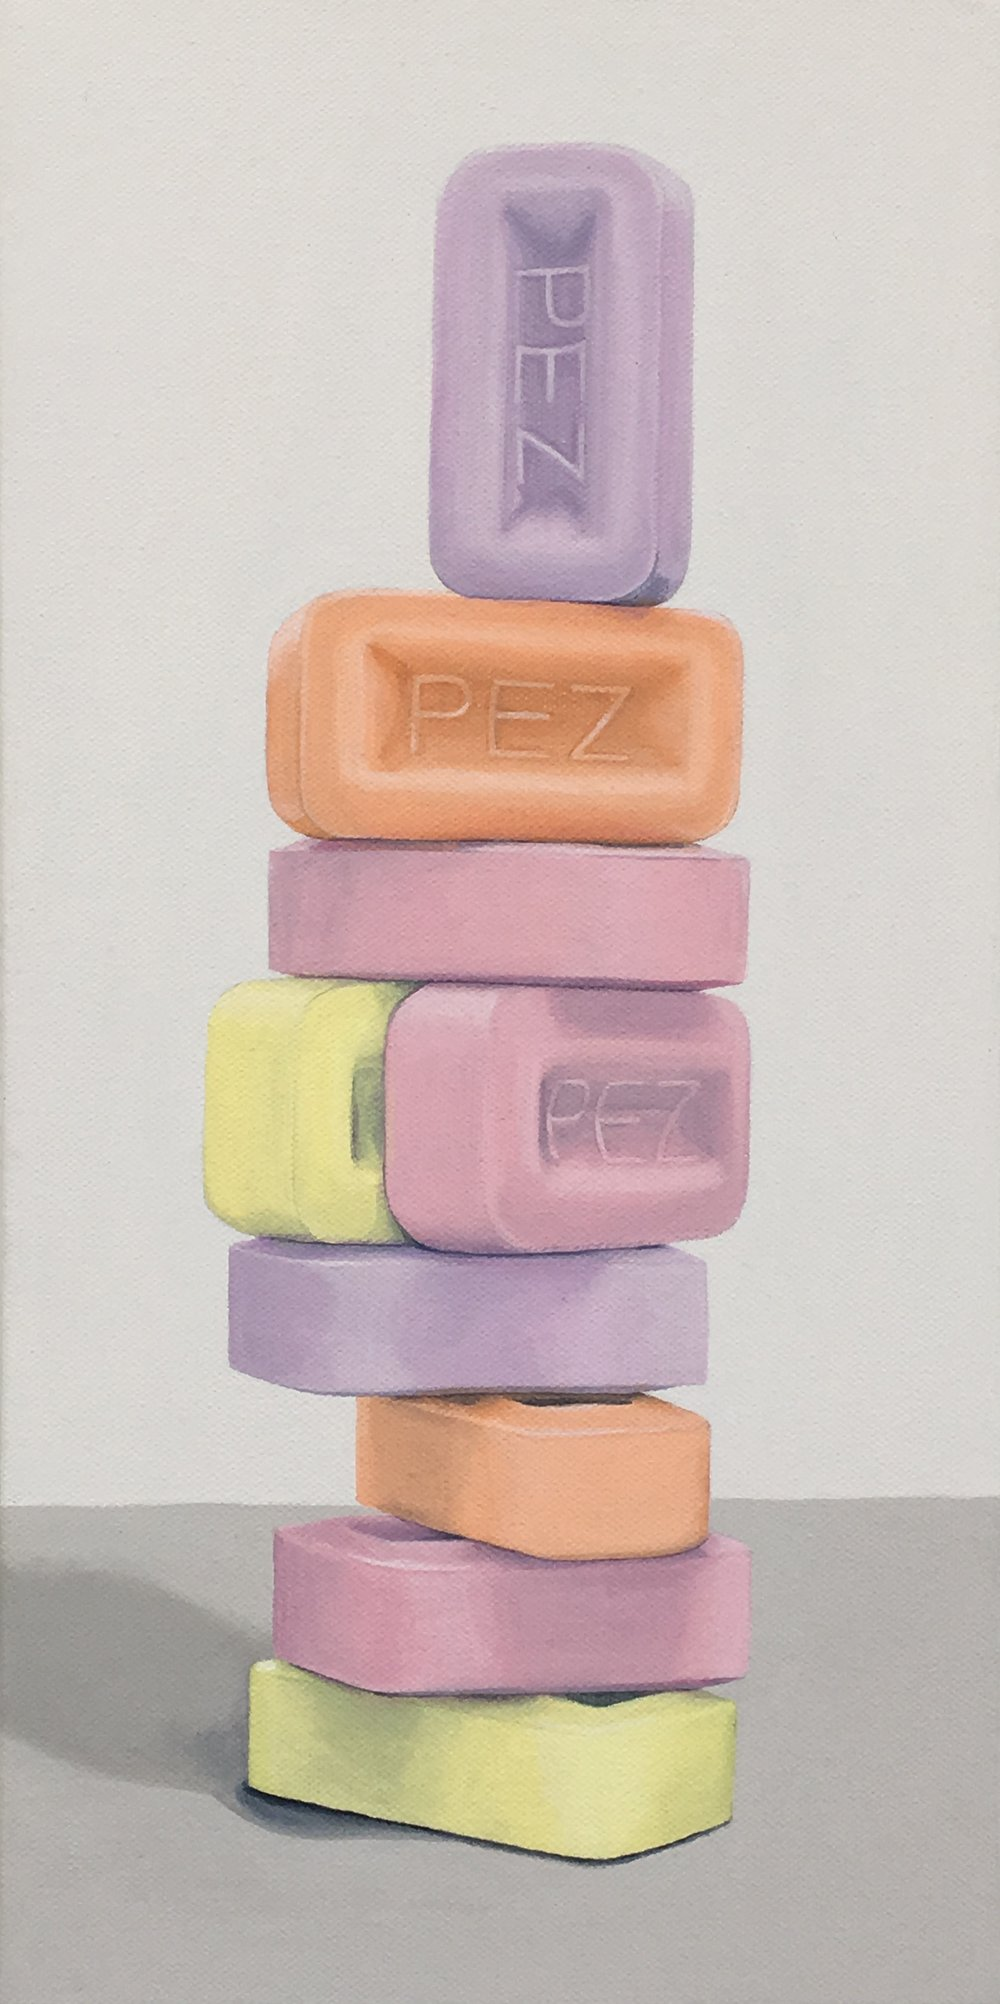 Totem: PEZ - Historically these little candies were mint flavored and named for the German word mint 'pfefferminz', hence their name, PEZ. Now a still popular treat that comes with a playful dispenser,his work shows the PEZ pieces without the dispenser and stacked playfully,as such could be titled a PEZ nude.8